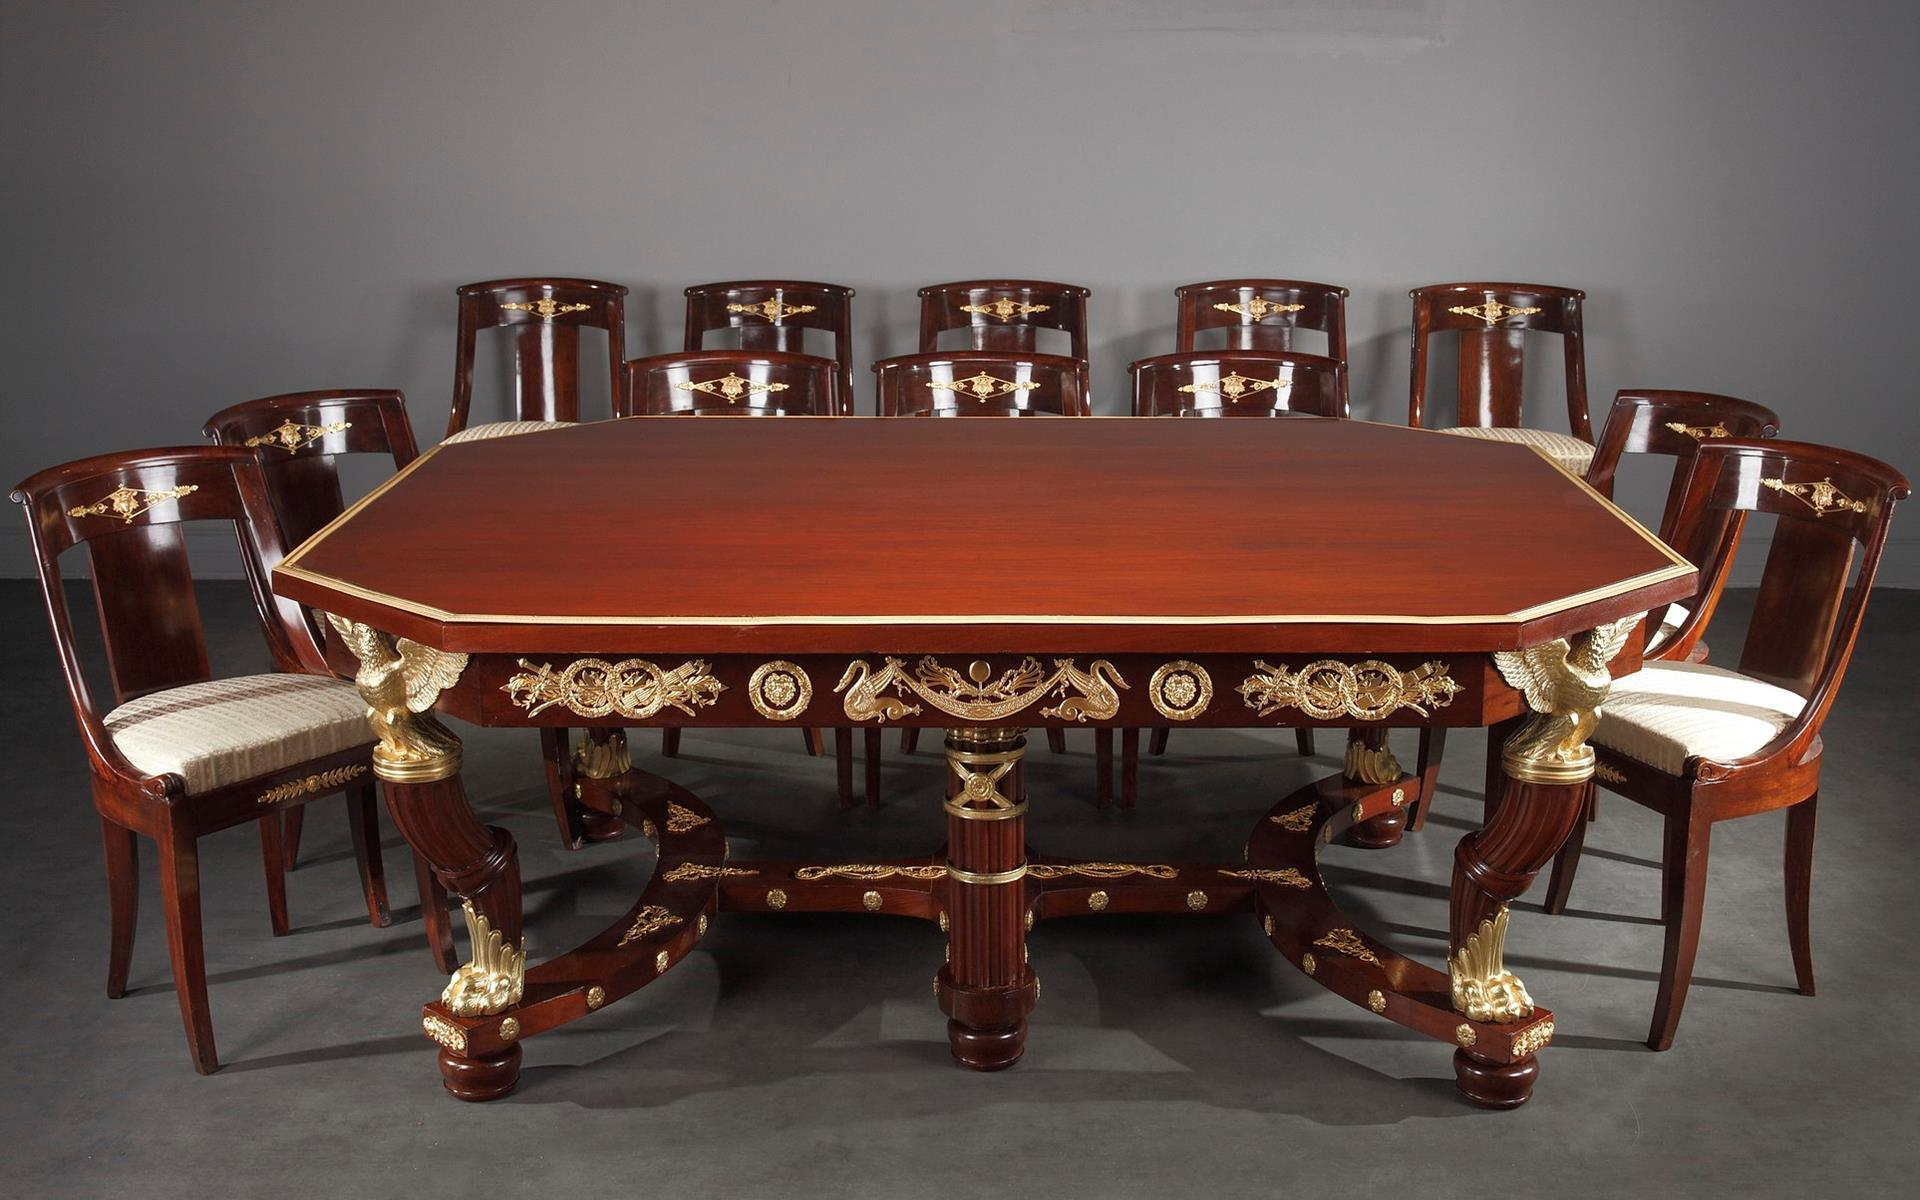 ASTONISHING MAHOGANY AND GILT BRONZE SUITE. EMPIRE STYLE